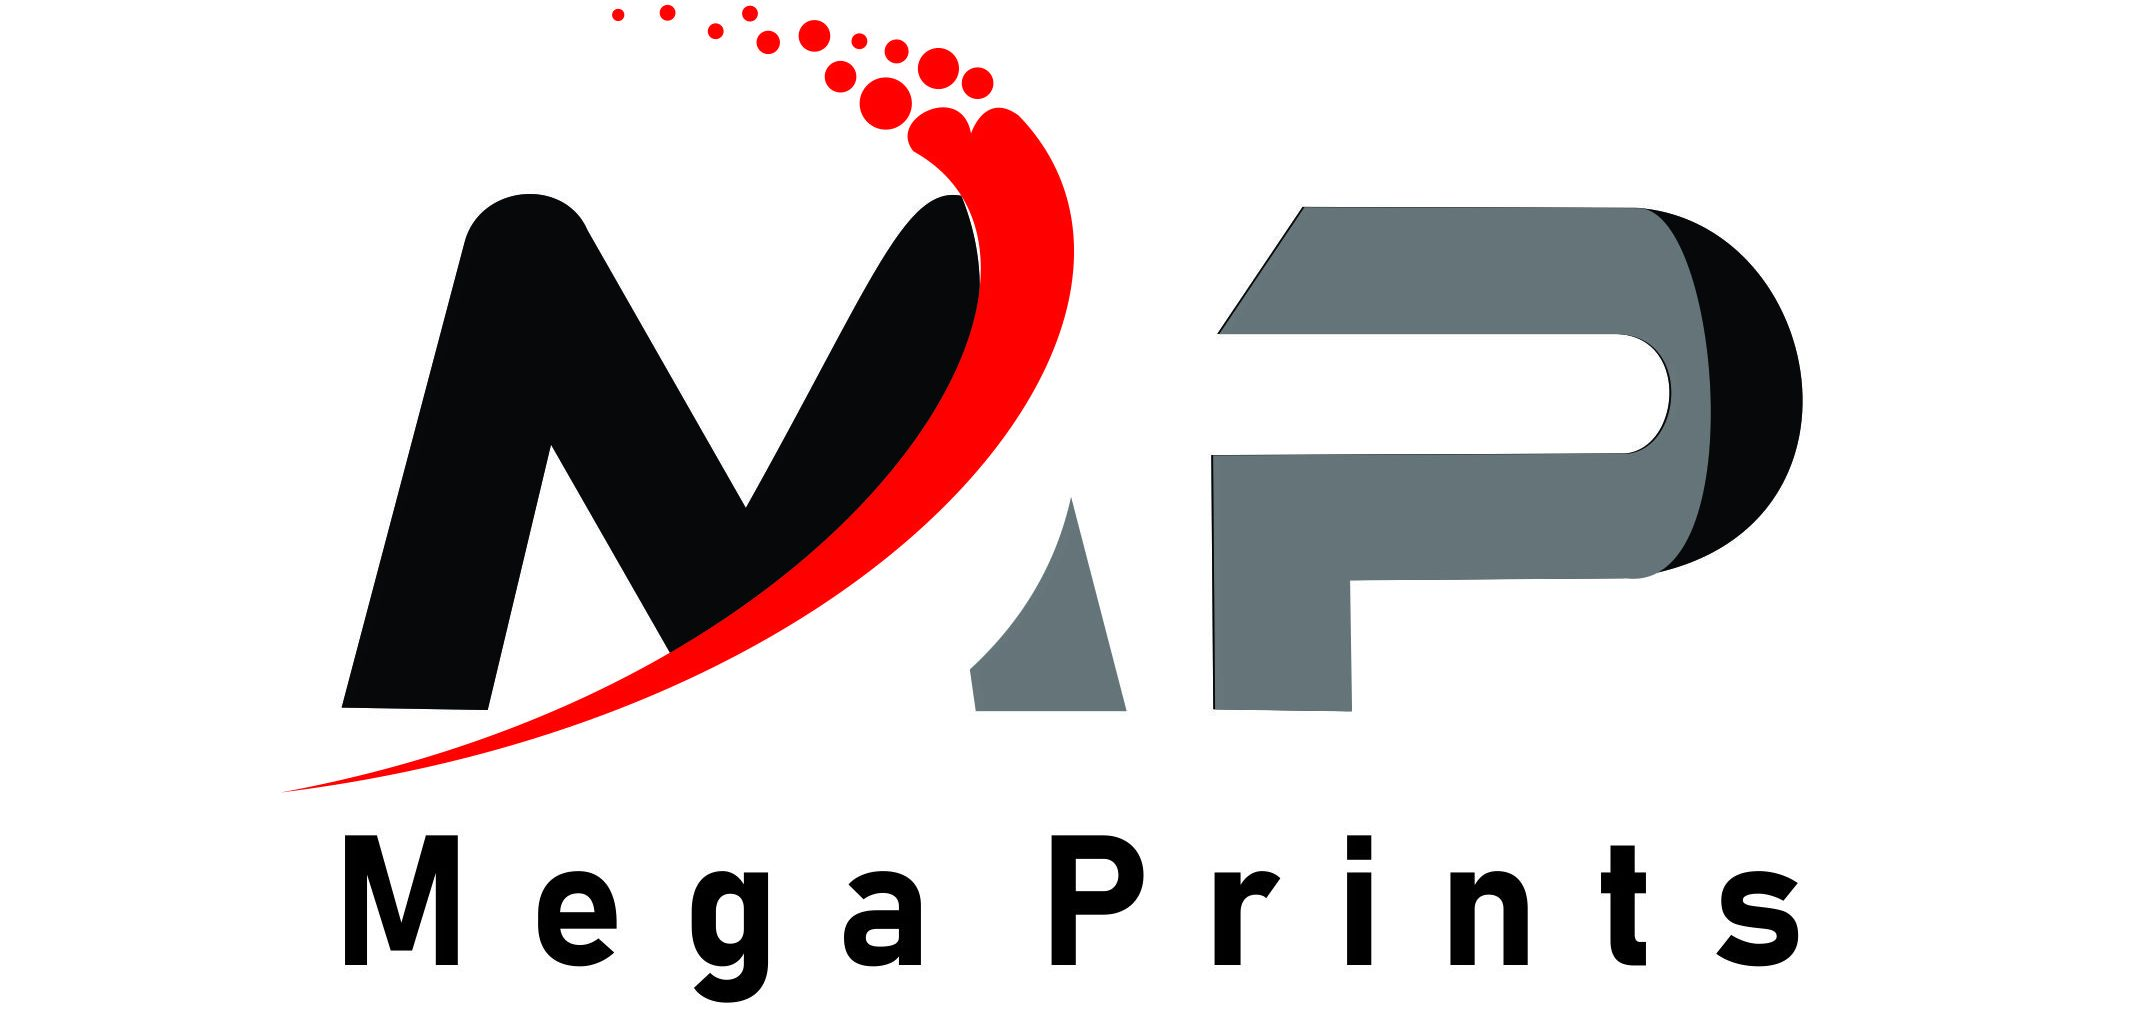 Diary Printing Companies in Johannesburg | Megaprints